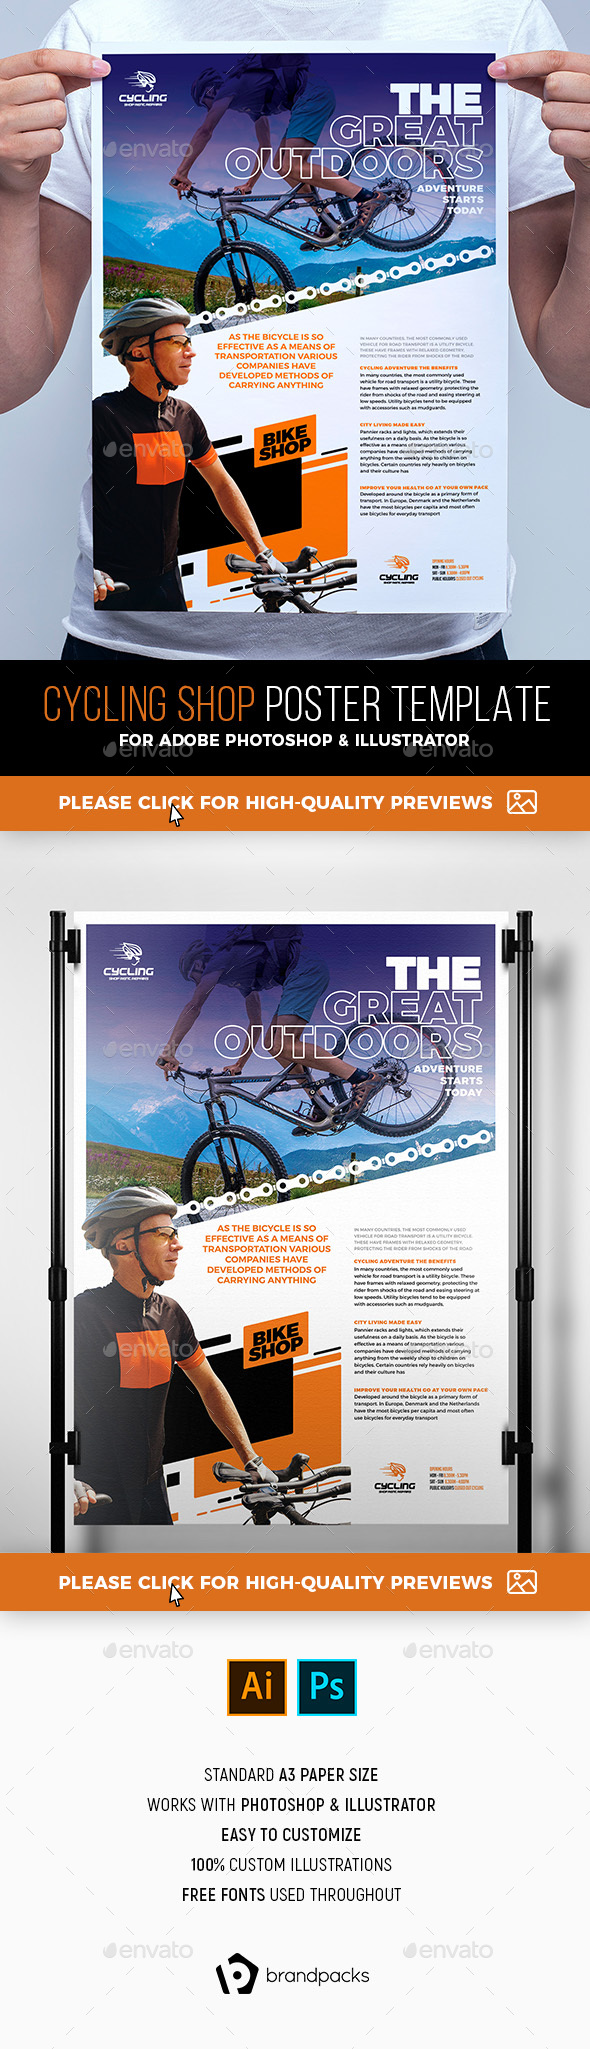 Cycling Shop Poster Template - Commerce Flyers